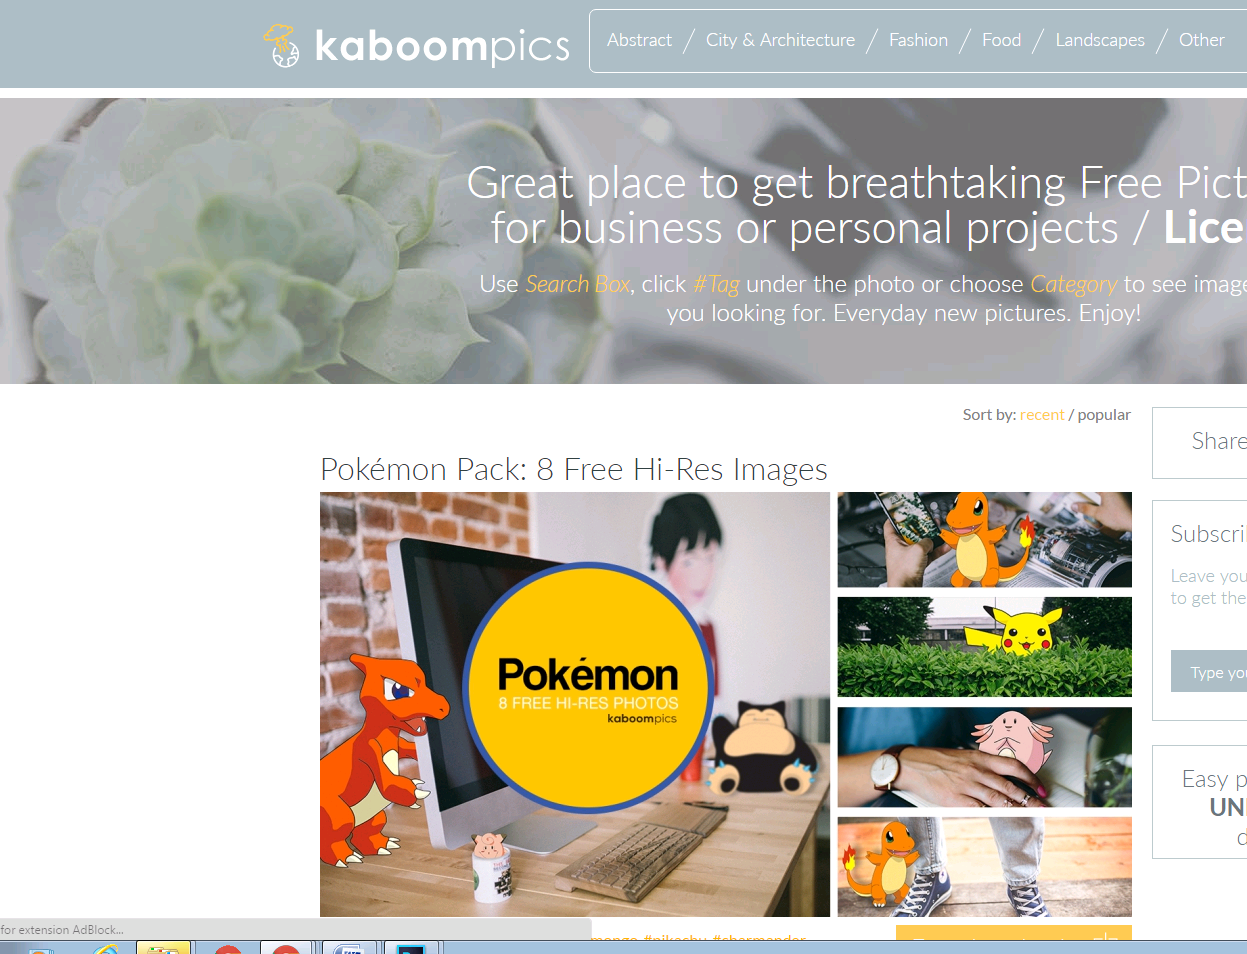 KABOOMPCIS splash screen